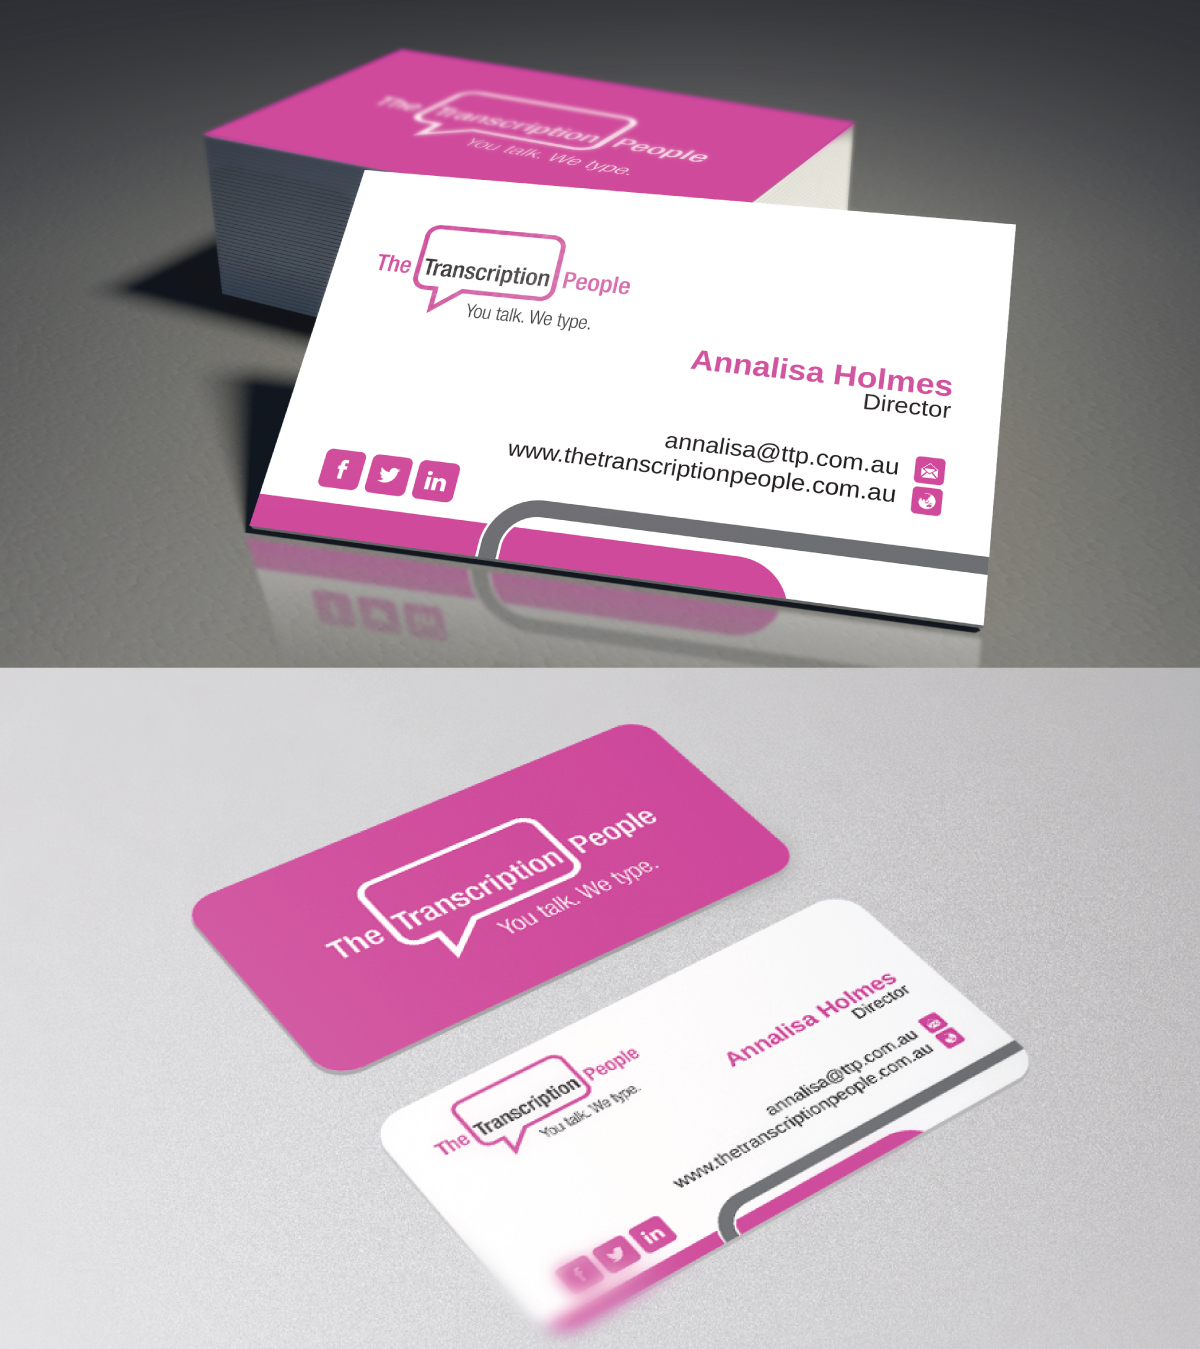 Business business card design for the transcription people pty ltd business business card design for the transcription people pty ltd in australia design 9780784 colourmoves